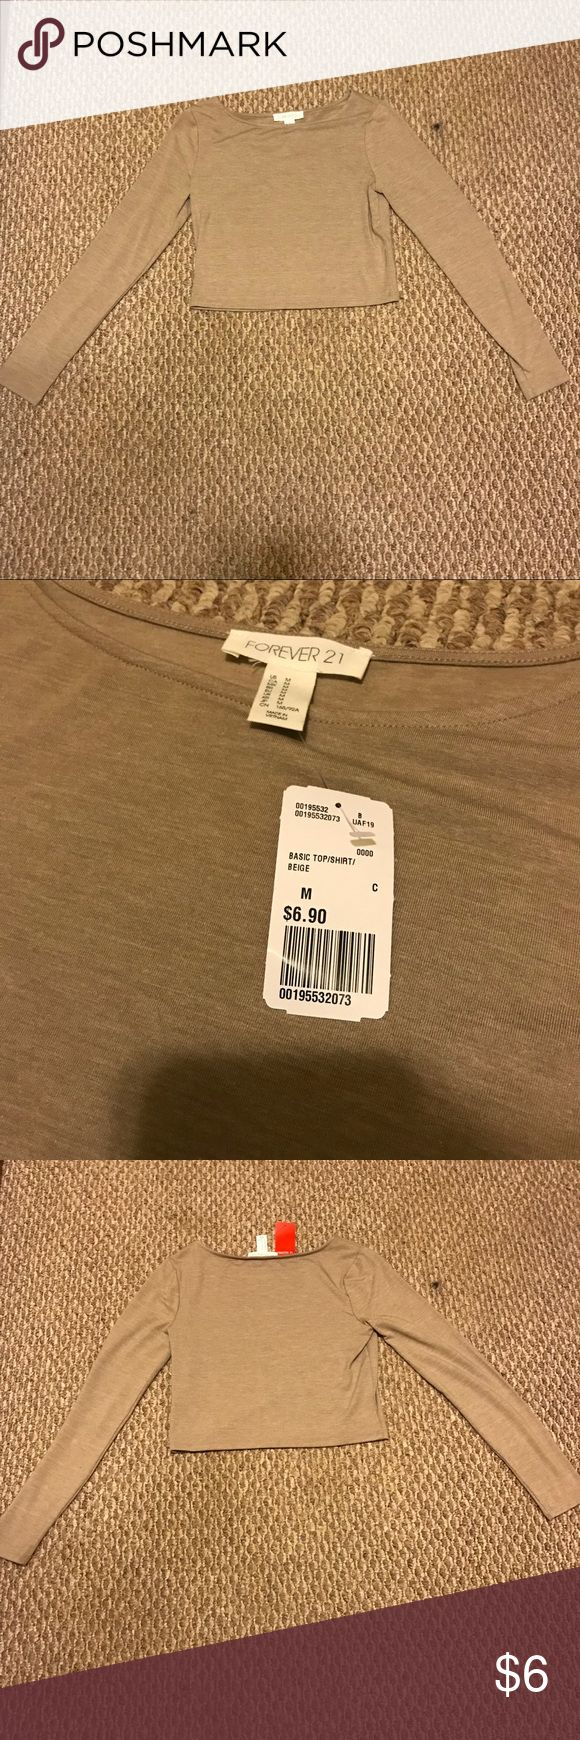 Forever 21 Beige Crop Top Brand New Forever 21 Crop Top!   Bought and never wore! Selling same price I bought it at, because with posh fees I wouldn't make any of my money I paid for this back. Forever 21 Tops Crop Tops